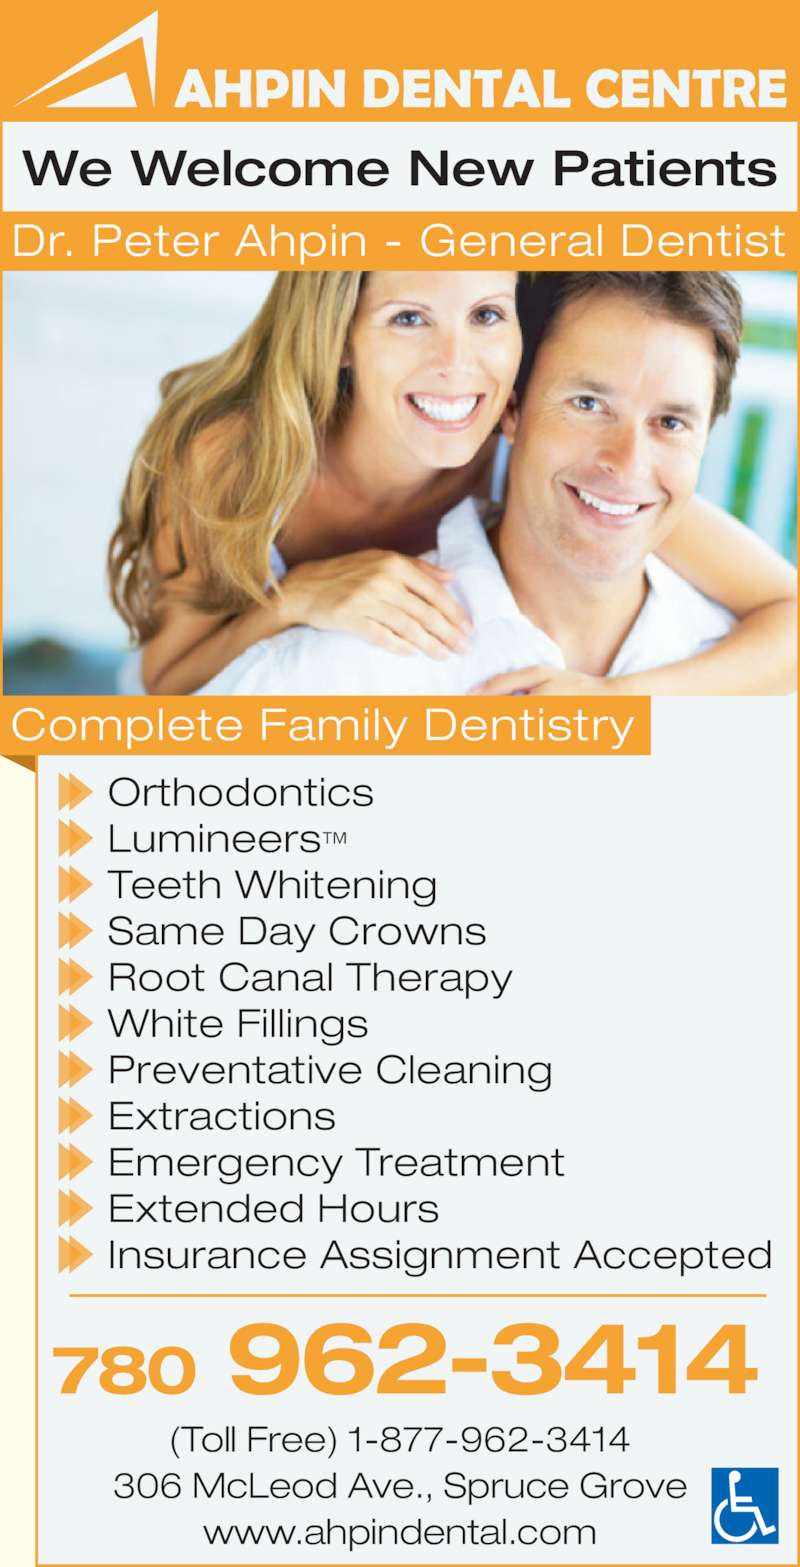 Ahpin Dental Centre (780-962-3414) - Display Ad - 780 962-3414 (Toll Free) 1-877-962-3414 306 McLeod Ave., Spruce Grove www.ahpindental.com We Welcome New Patients Orthodontics Lumineers? Teeth Whitening Same Day Crowns Root Canal Therapy White Fillings Preventative Cleaning Extractions Emergency Treatment Extended Hours Insurance Assignment Accepted Complete Family Dentistry Dr. Peter Ahpin - General Dentist